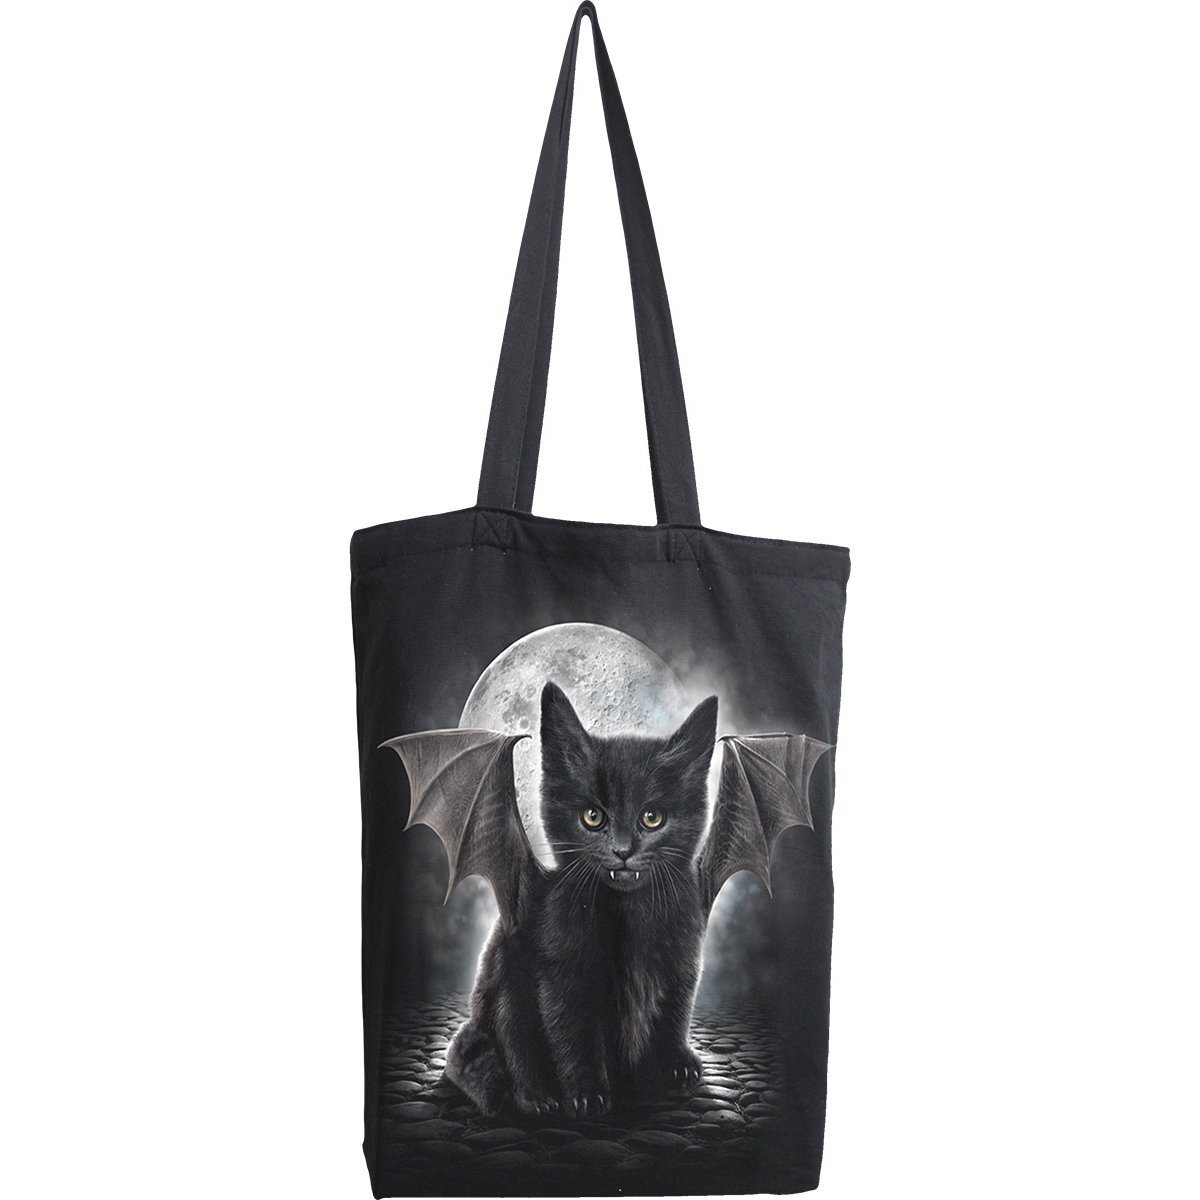 Vampire Kitten Cloth Tote Bag